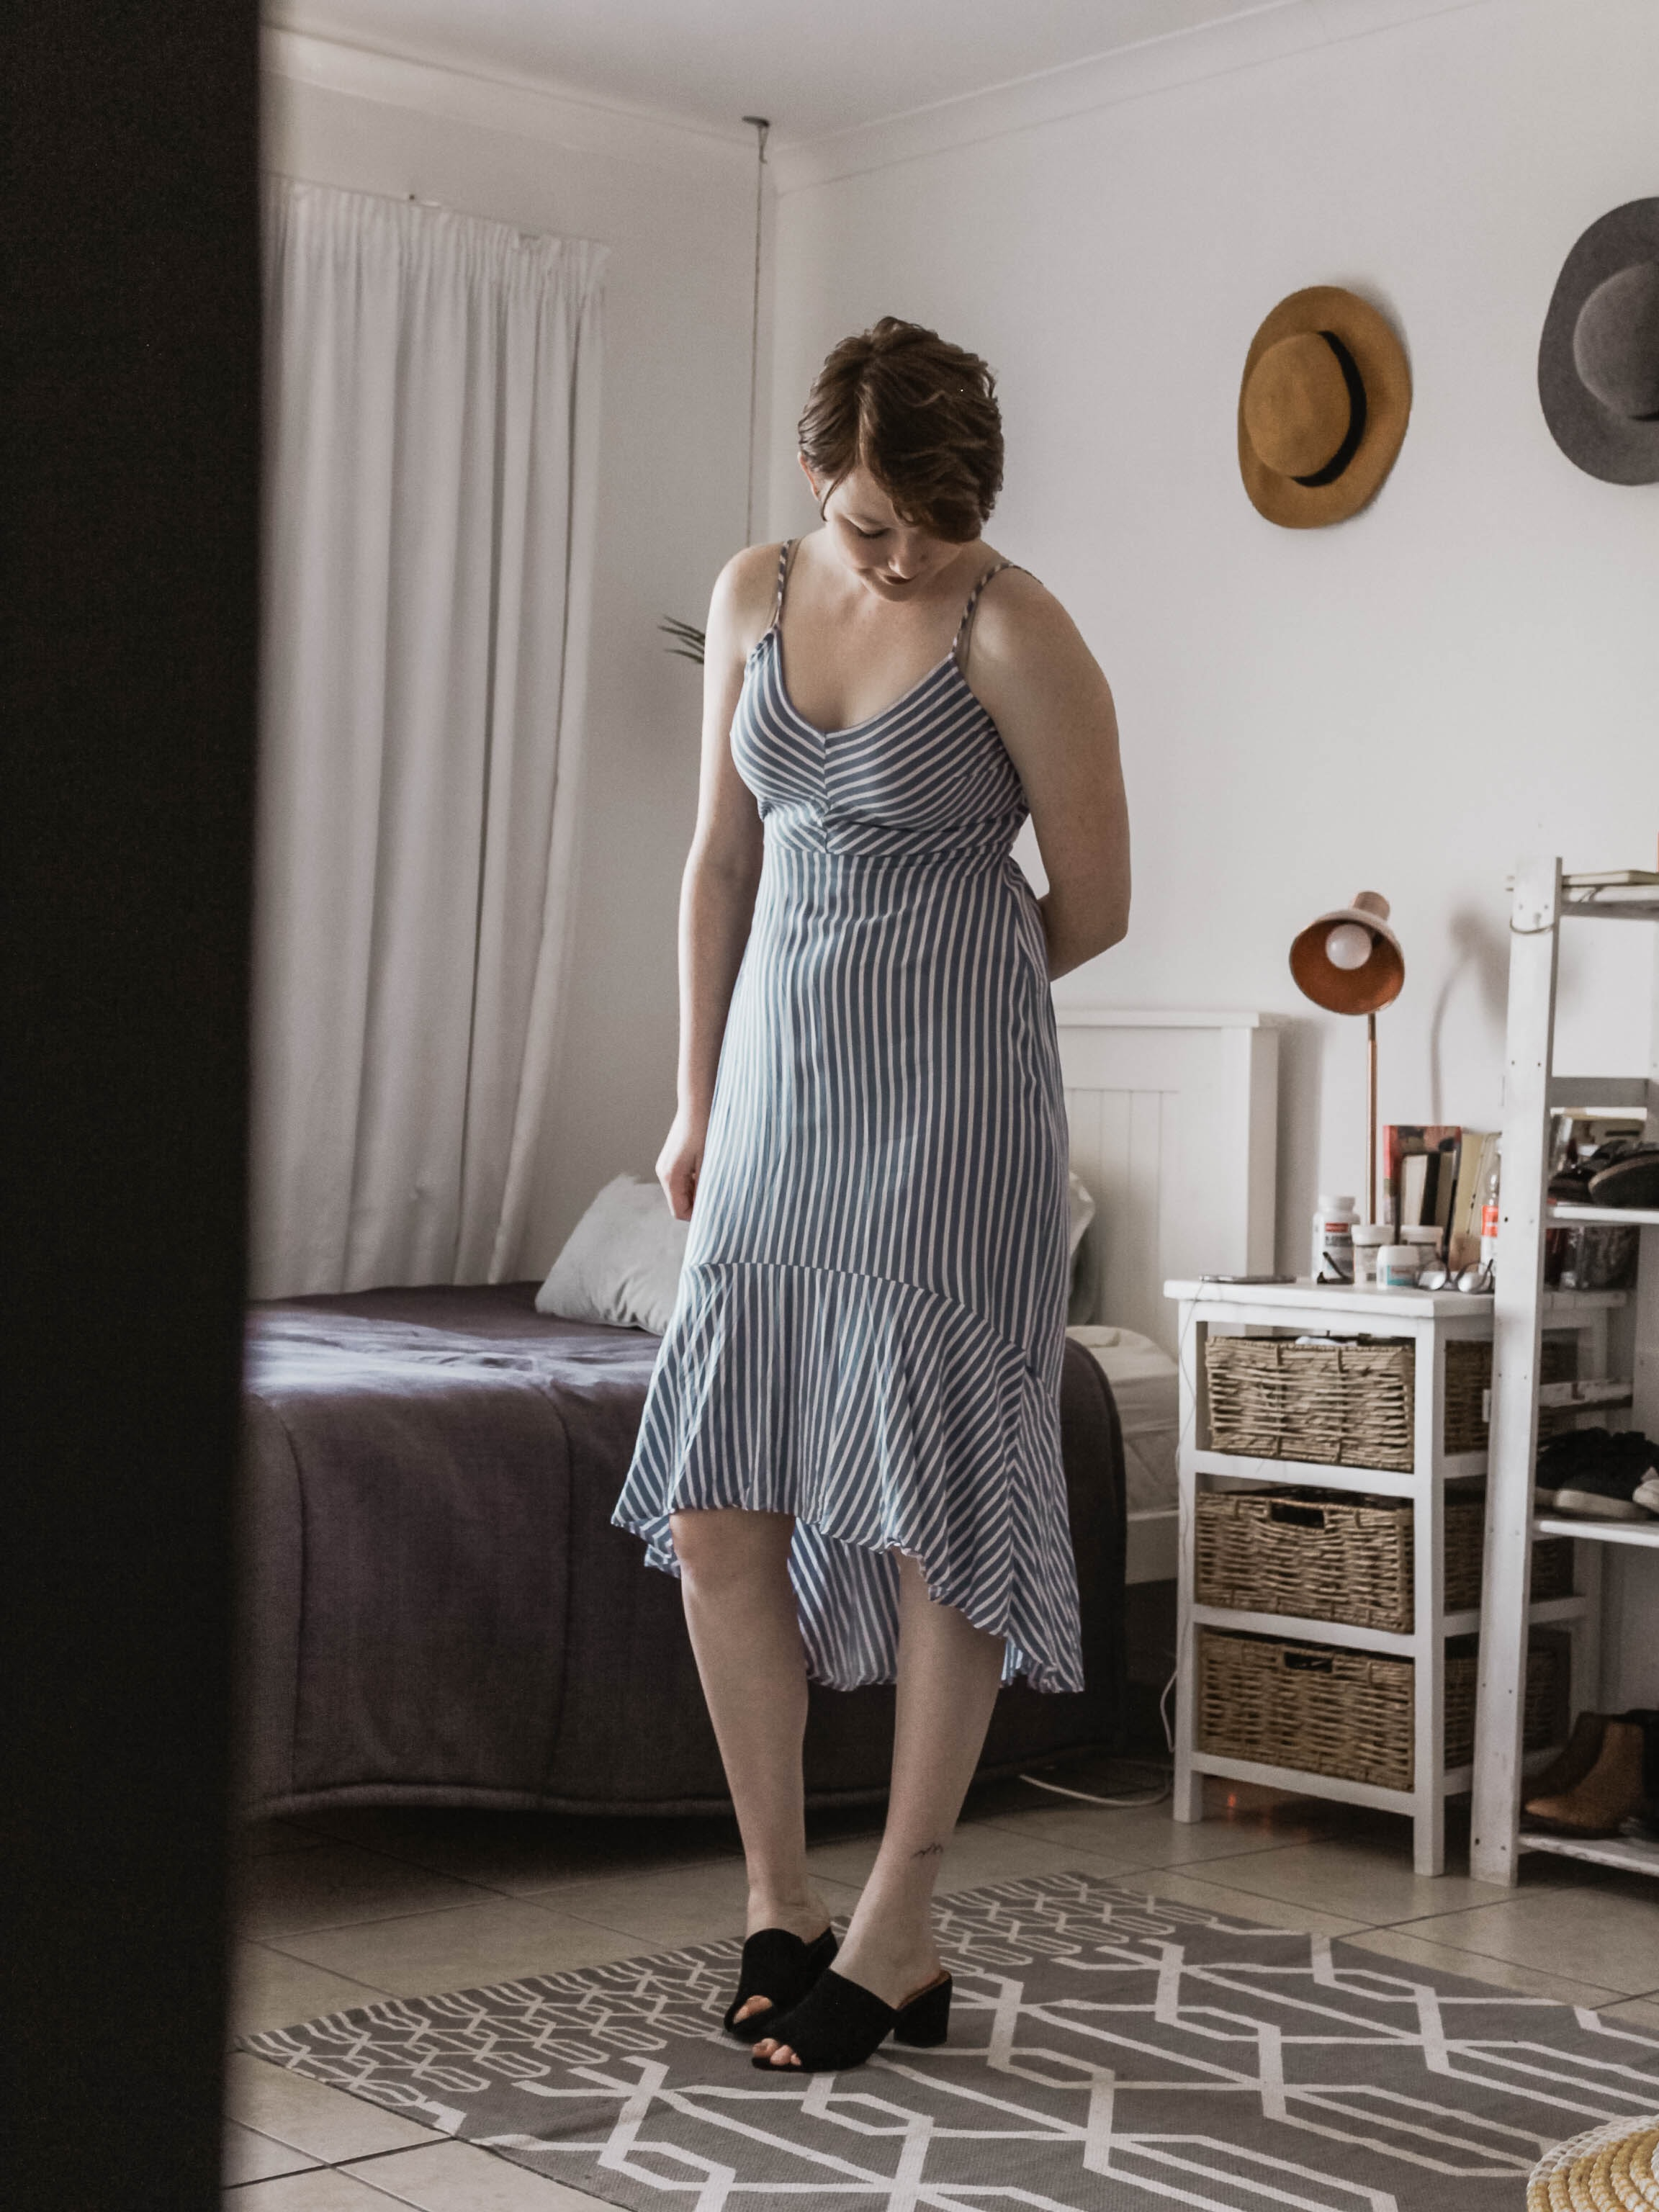 woman wearing black and white striped spaghetti strap dress standing beside bed frame